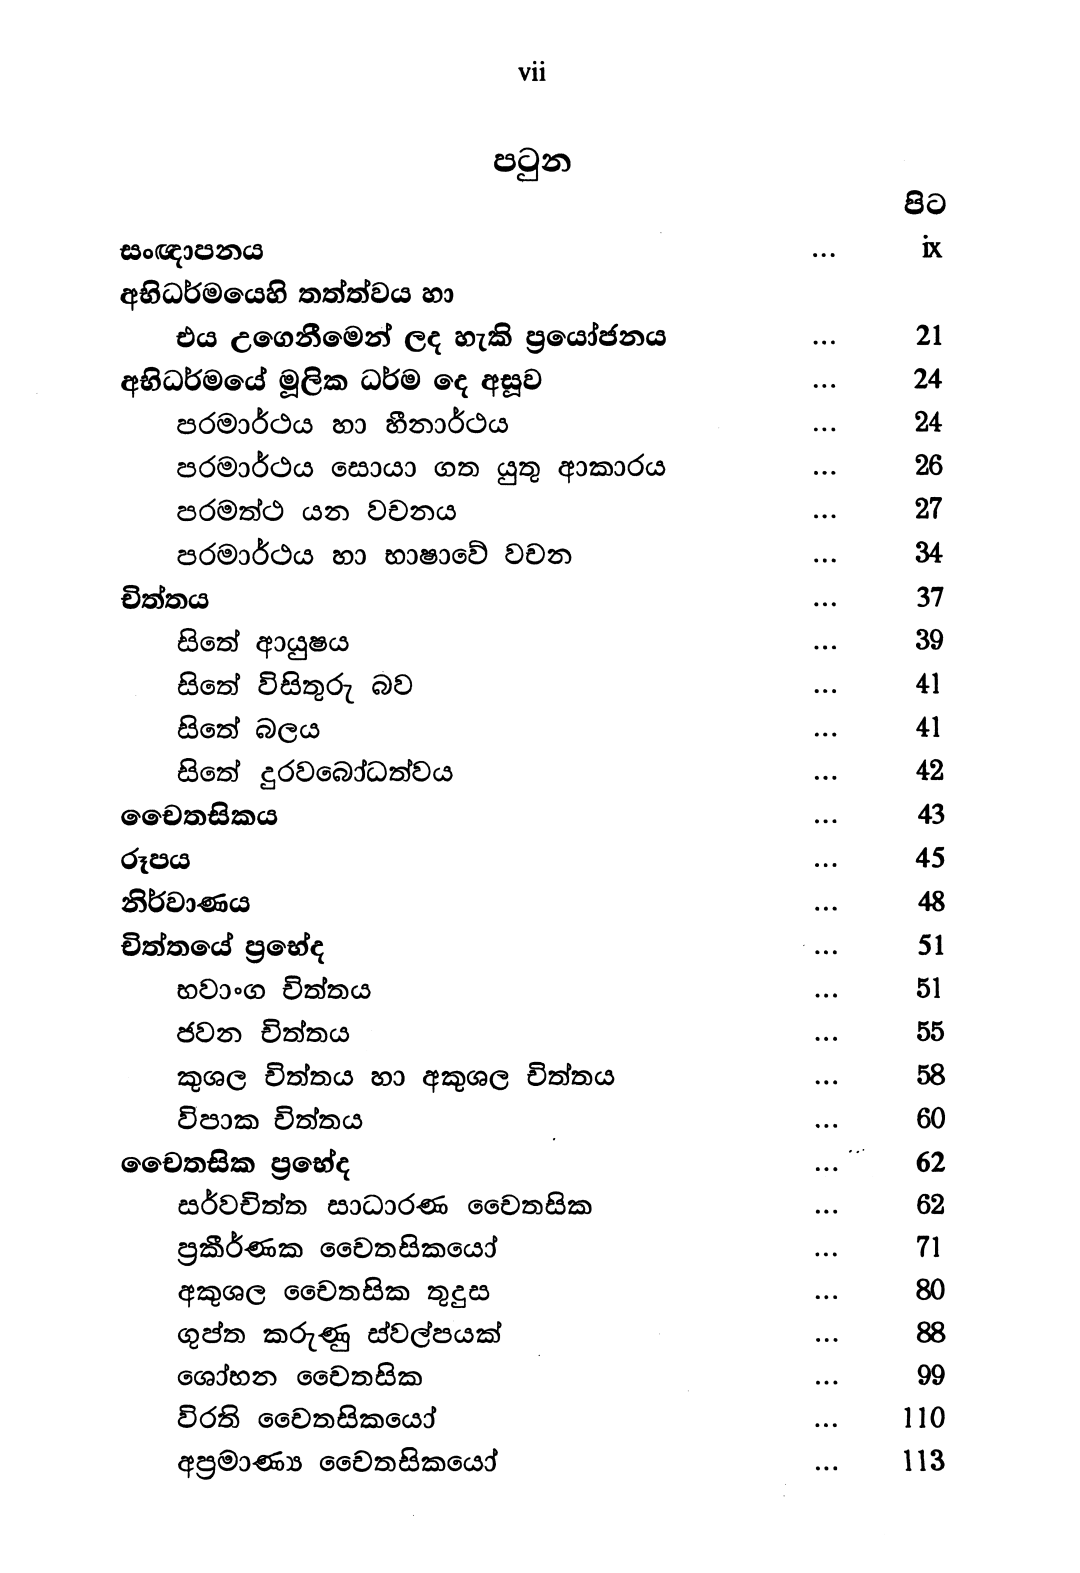 abhidharmaye-mulika-karunu-rerukane-chandavimala-nahimi-full-book-with-comments-highlights-and-book-marks_page_005